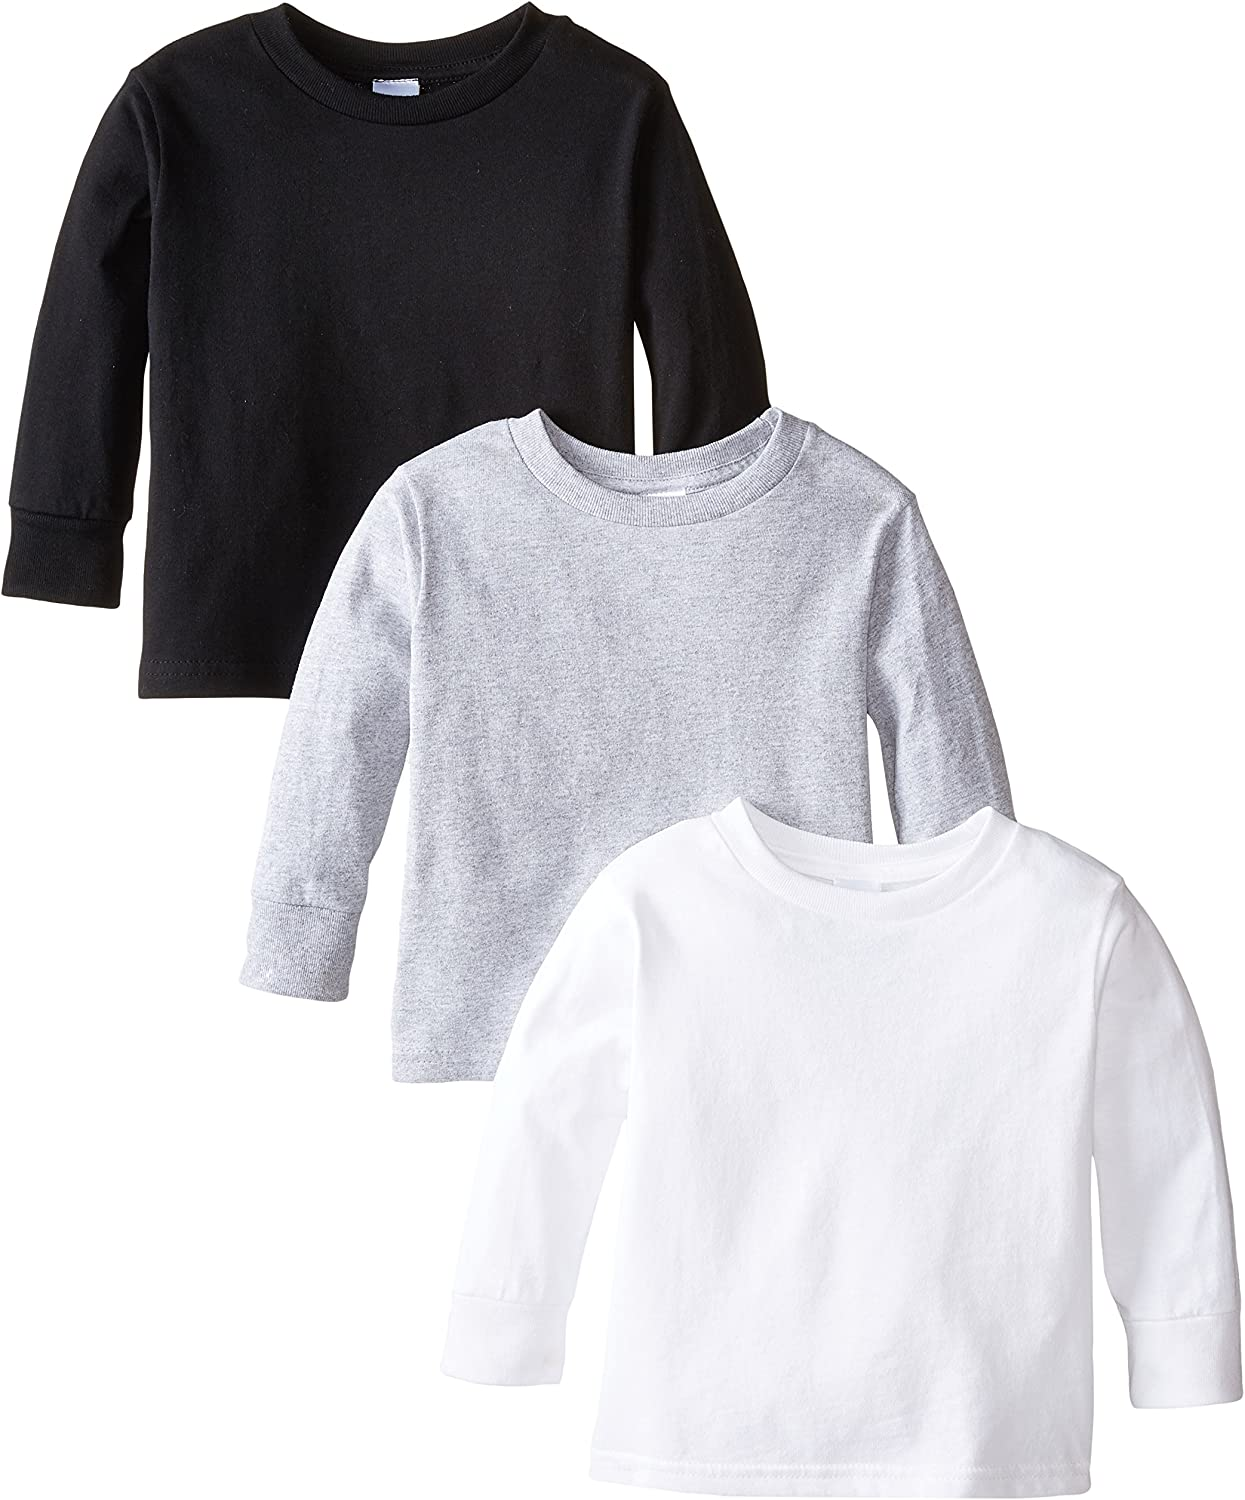 Clementine Apparel Girls Long Sleeve Basic Tee 3pack T-Shirt